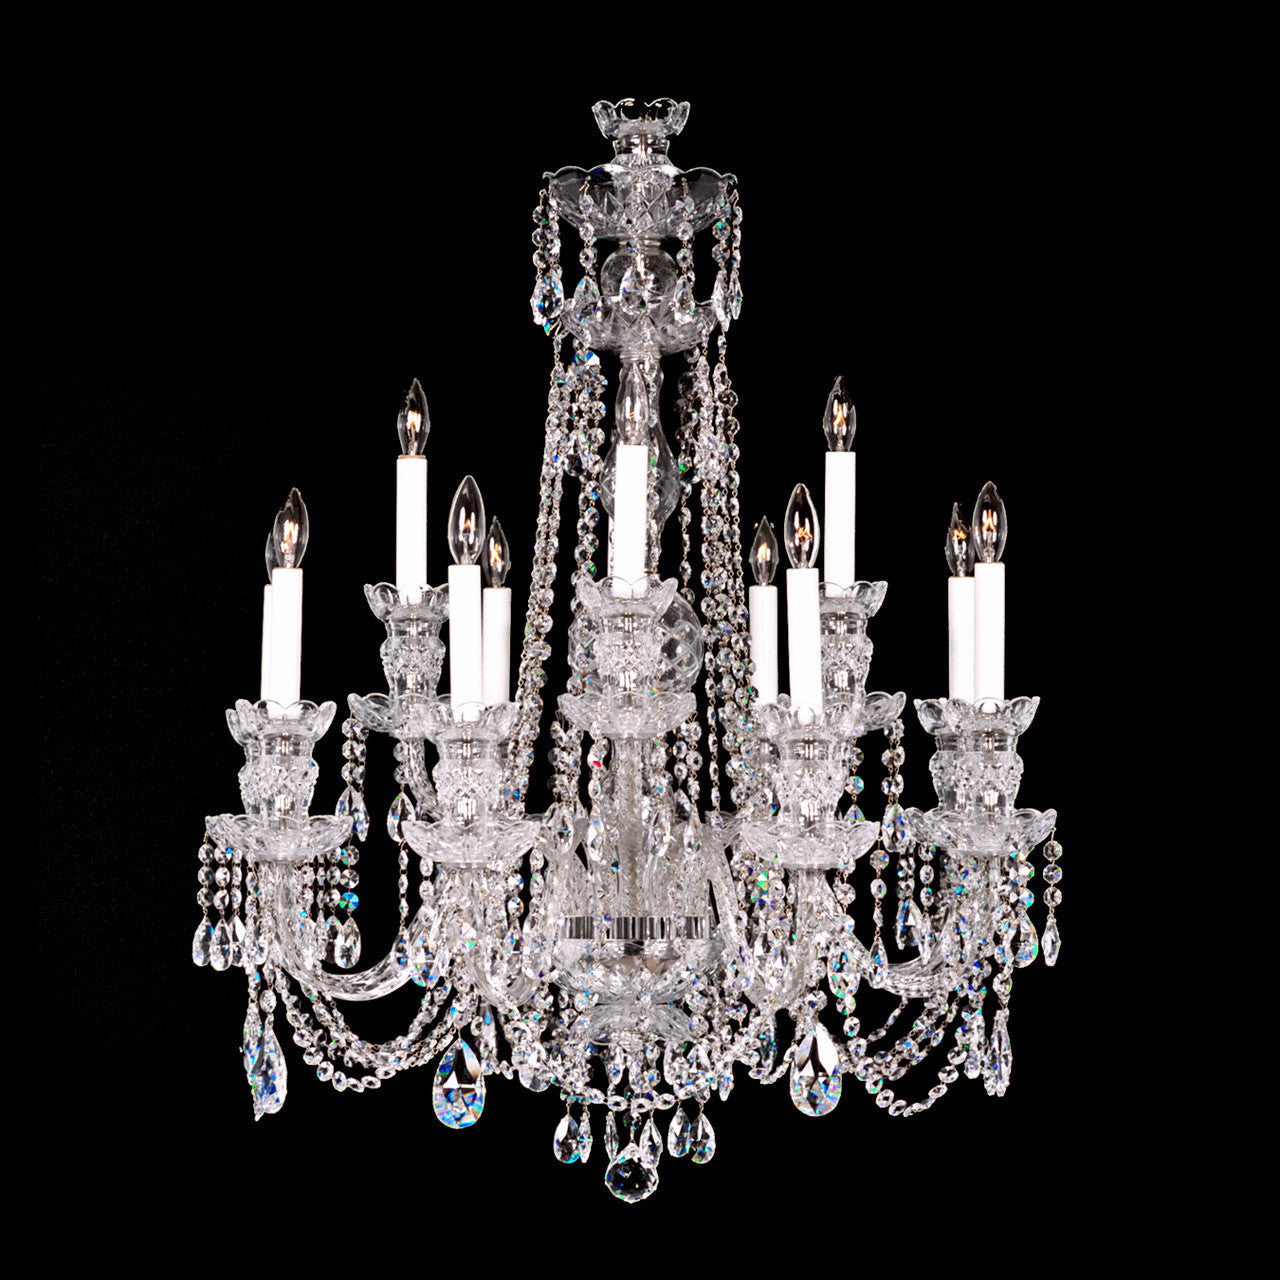 Crystal chandeliers and wall sconces direct free shipping 12 light crystal chandelier 84 medium with swarovski arubaitofo Gallery